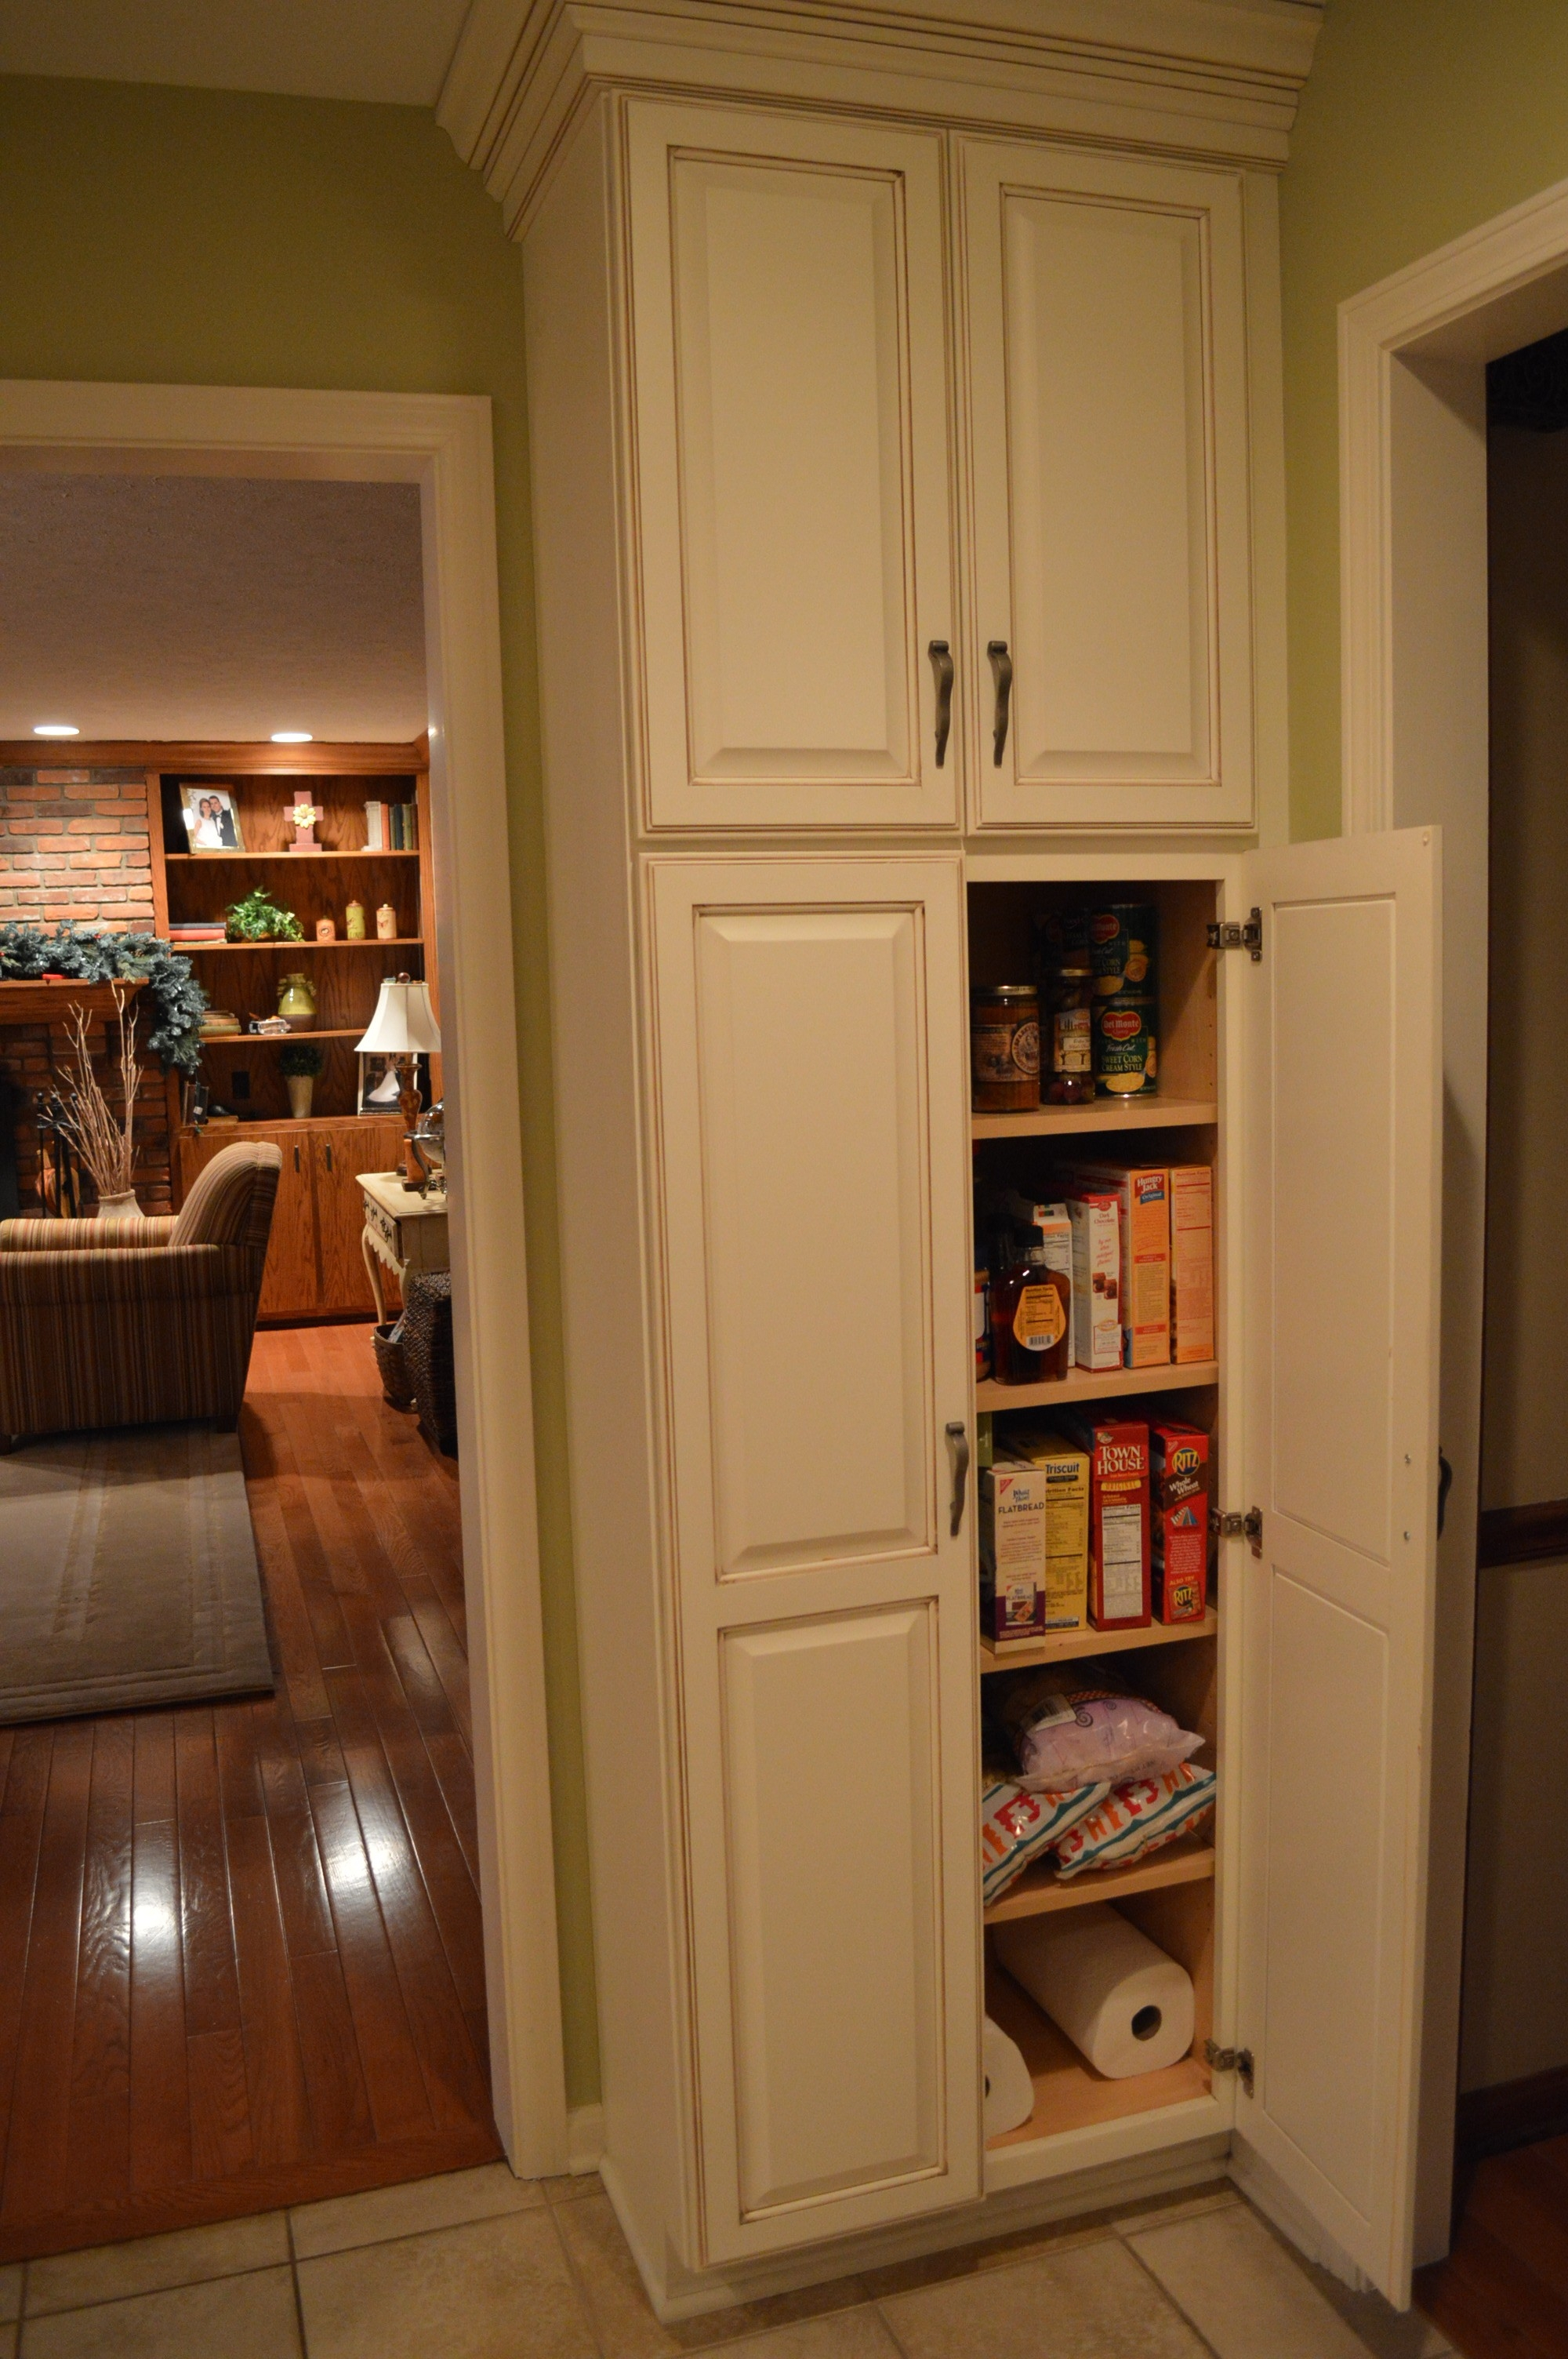 12 Inch Wide Tall Kitchen Cabinets